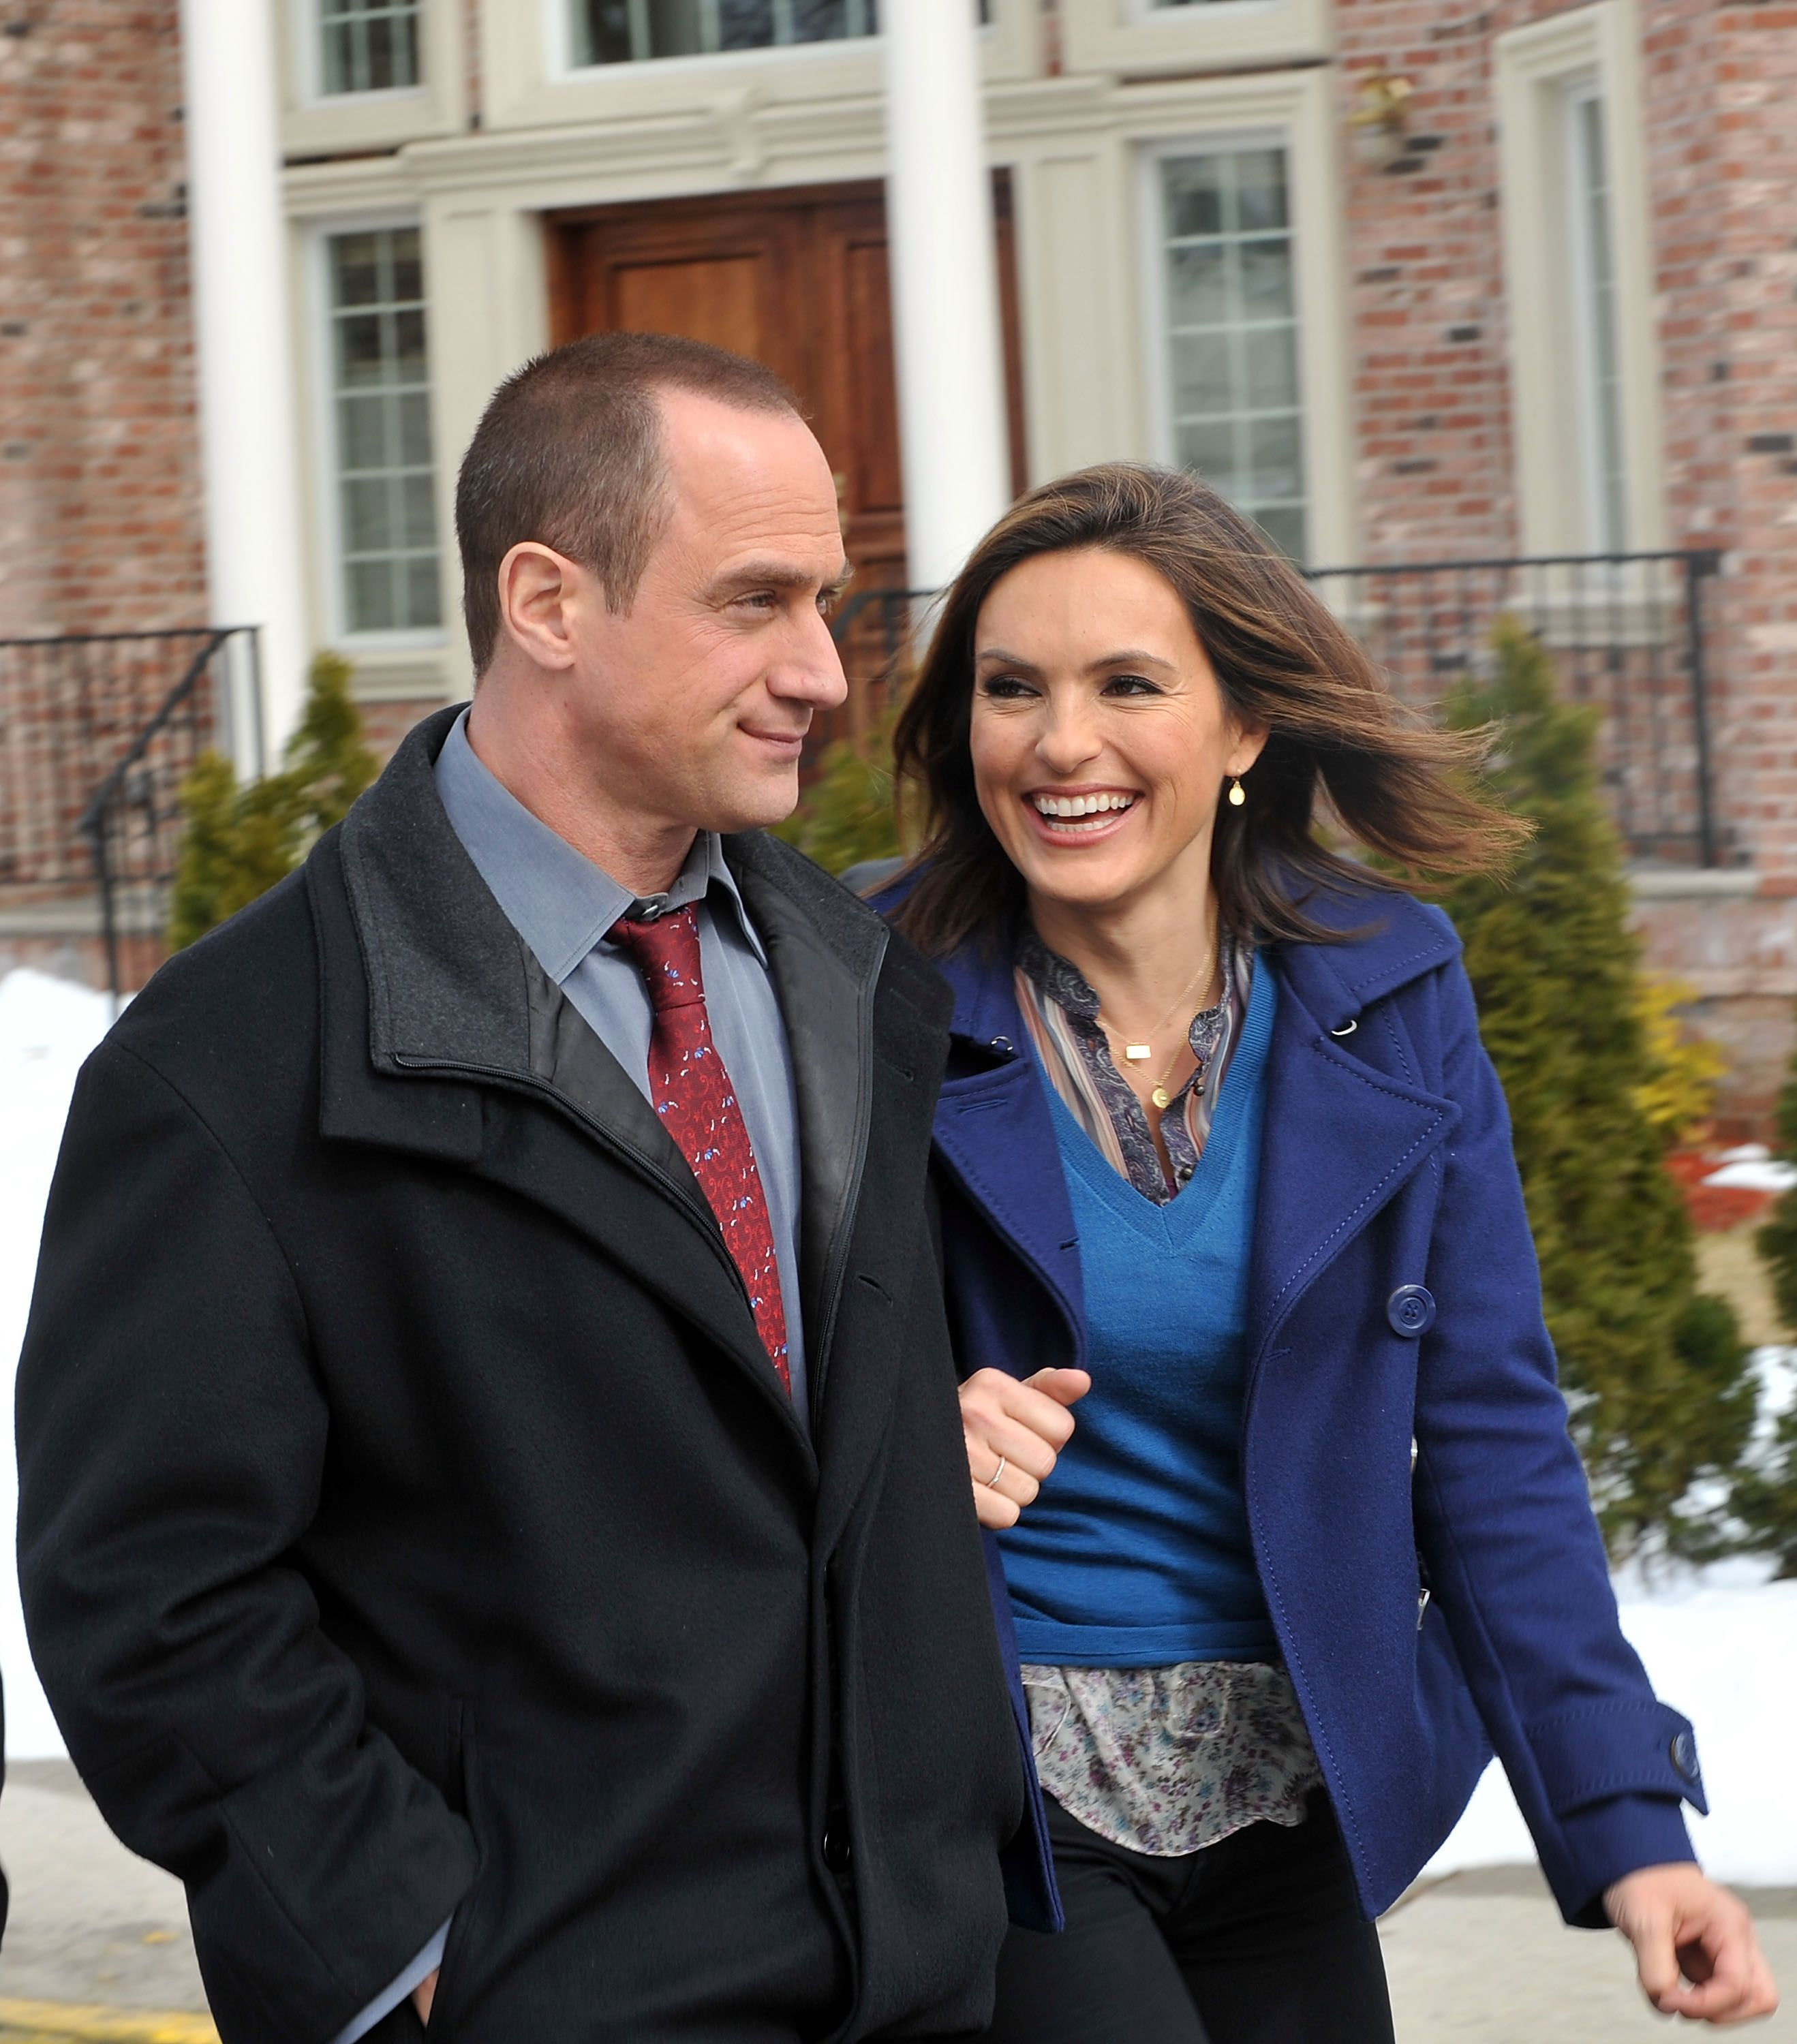 """Mariska Hargitay and Christopher Meloni filming on location for """"Law & Order: SVU"""" in 2010 